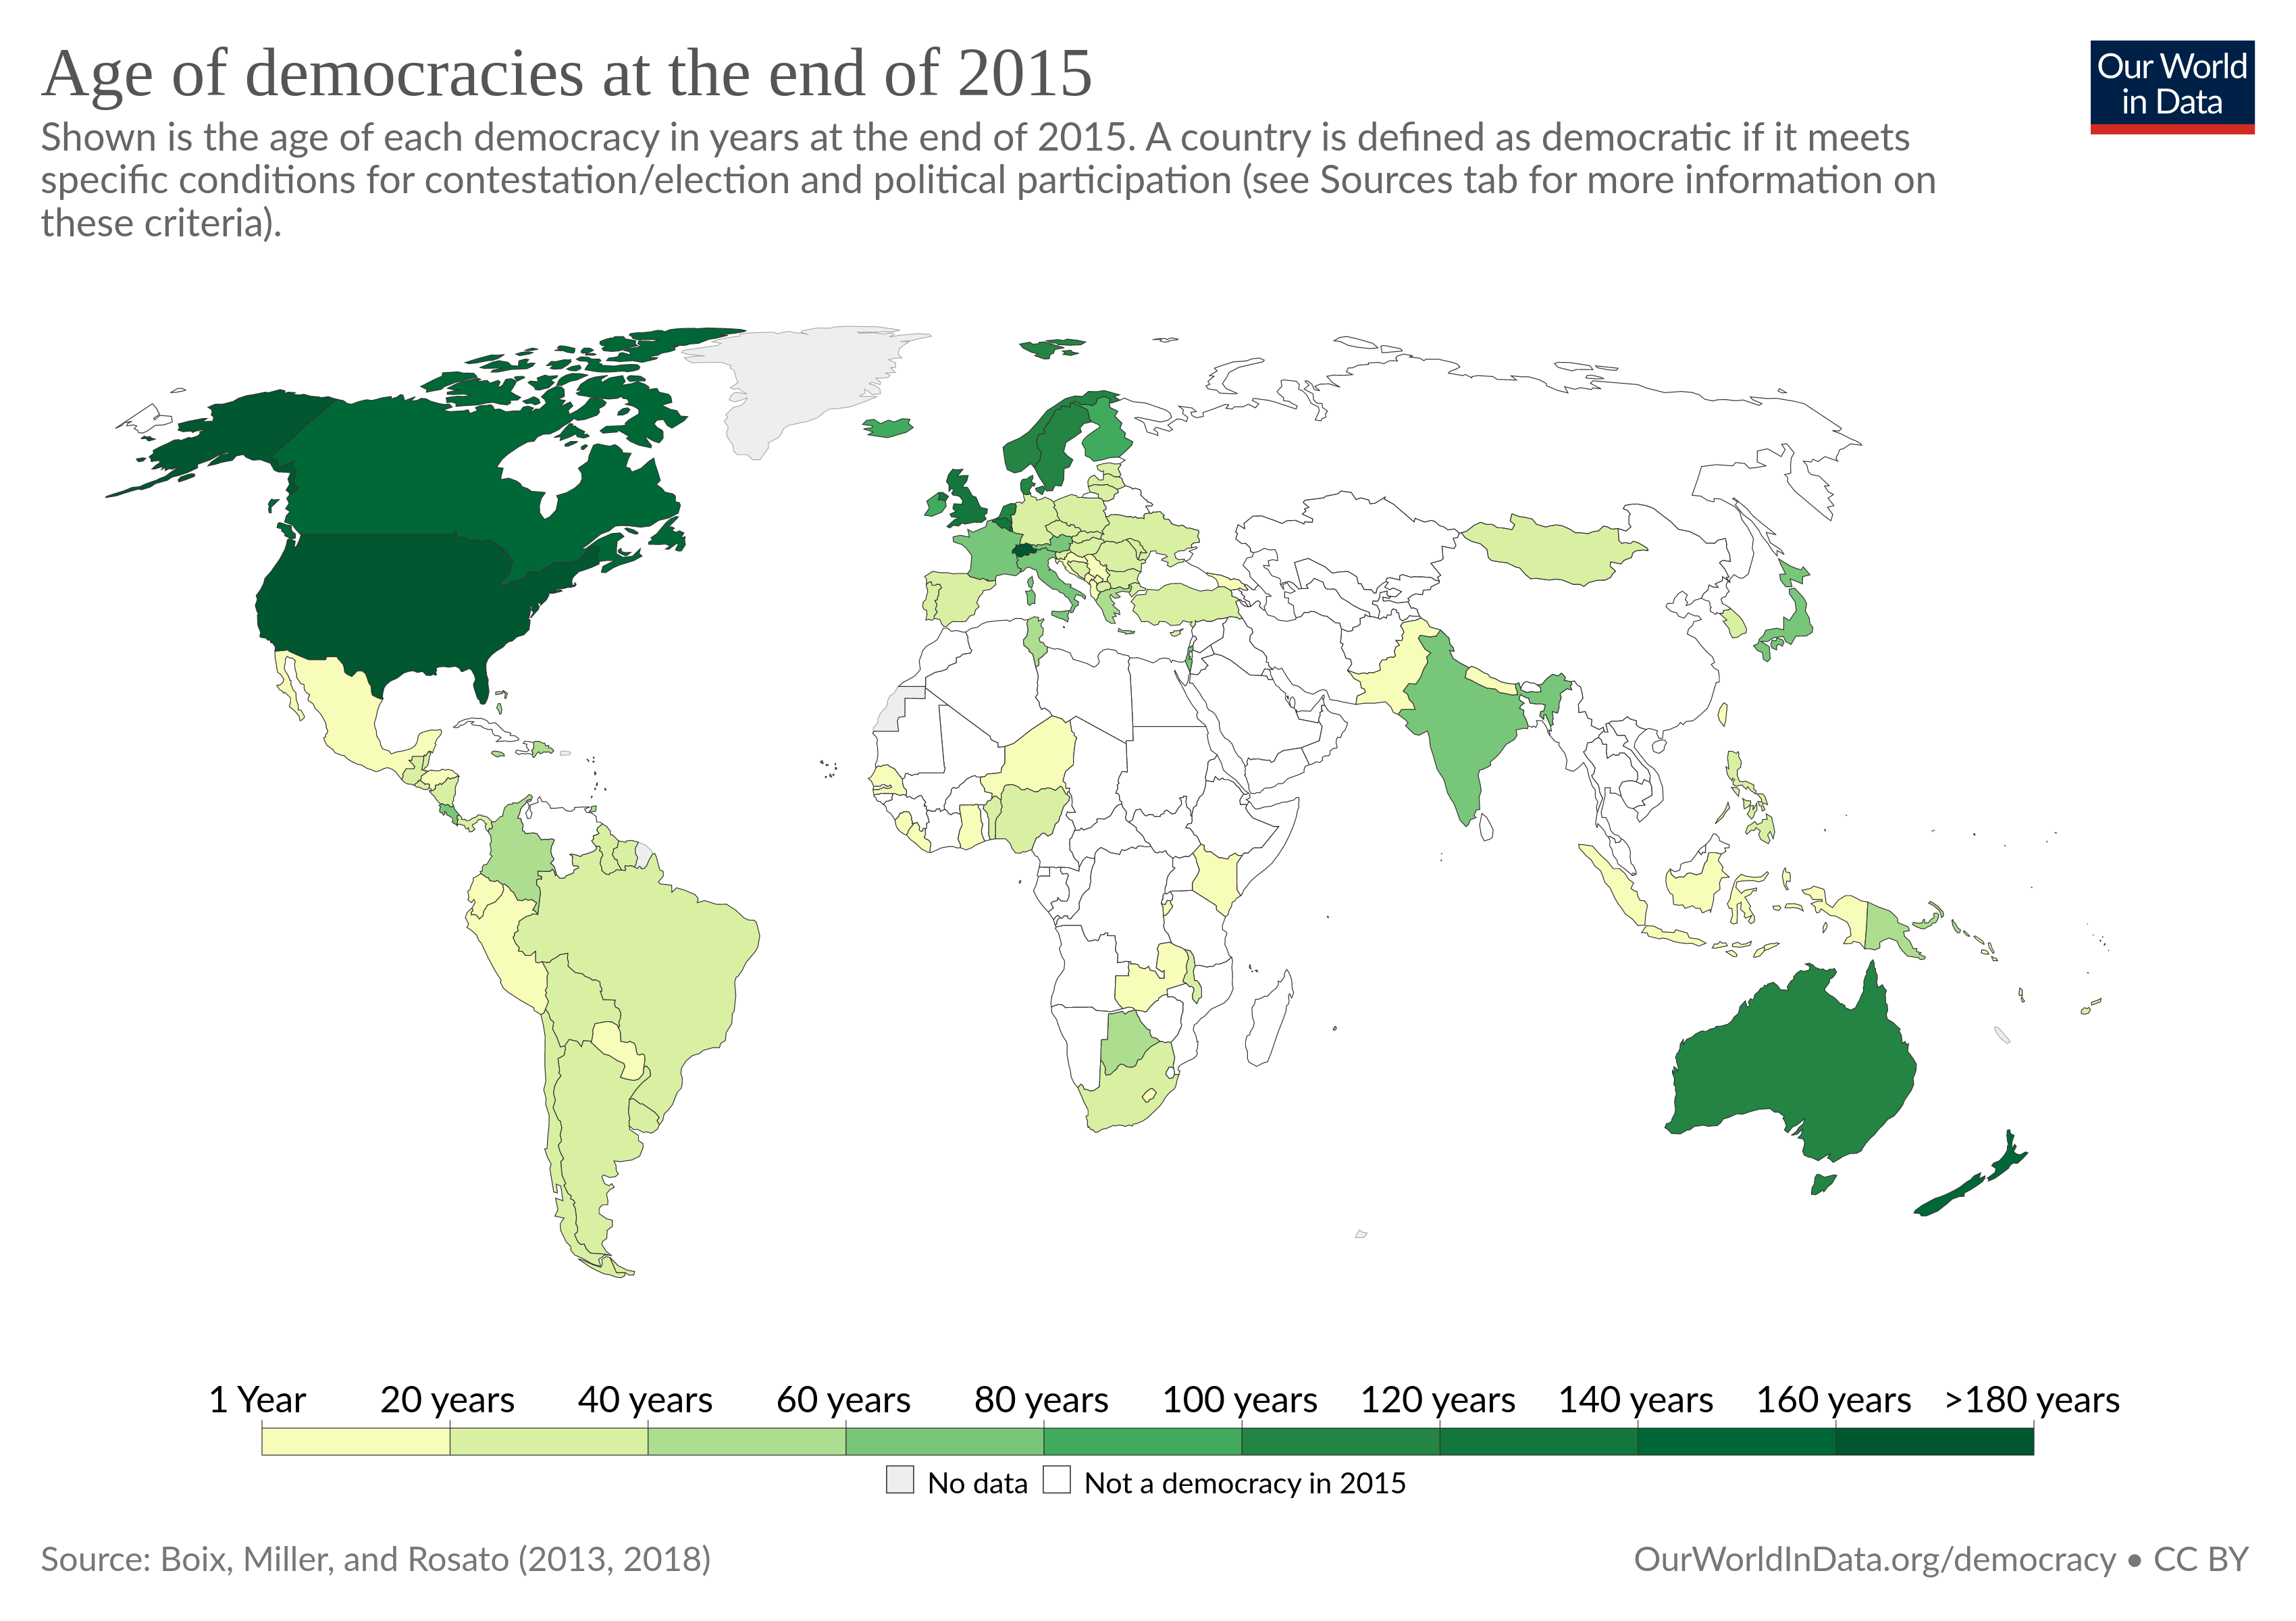 Ages of Democracies